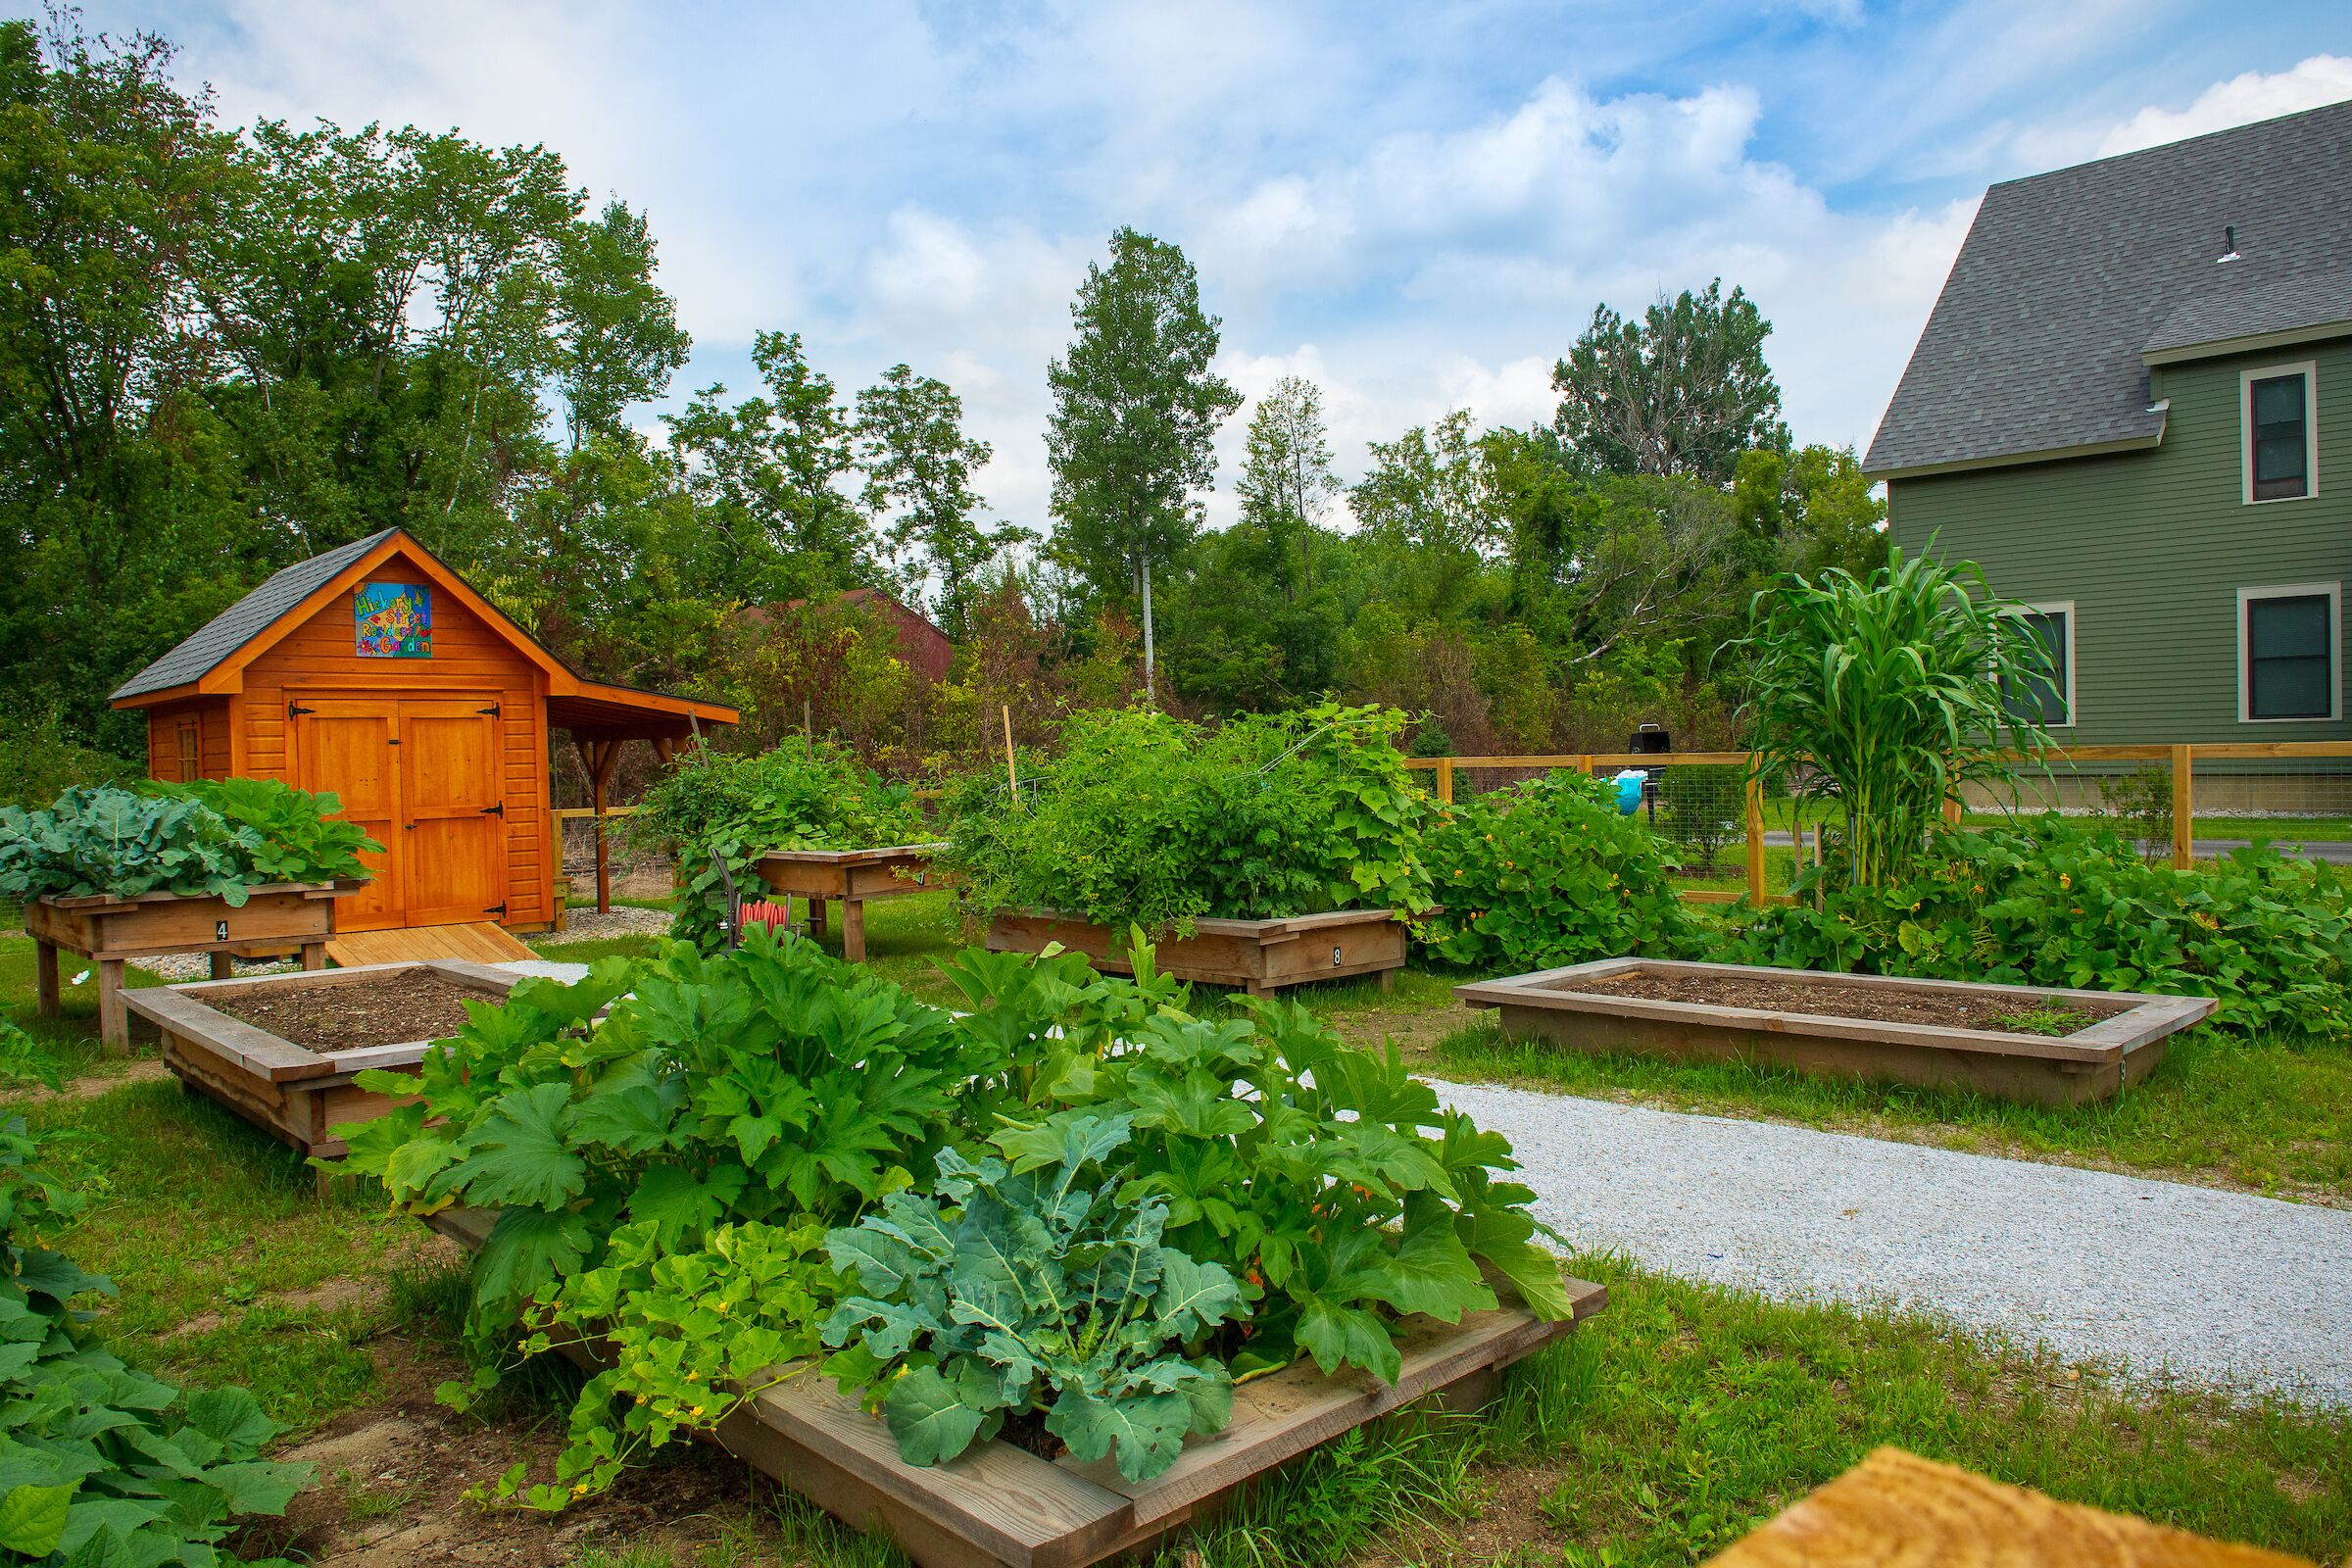 A COMMUNITY GARDEN IN RUTLAND'S HICKORY STREET NEIGHBORHOOD. THANKS TO THE PARSONS PLATFORM'S DATA MONITORING, HOUSING VERMONT IS ABLE TO REDIRECT SAVINGS FROM EQUIPMENT AND FUEL COSTS TO RESOURCES, LIKE THIS GARDEN, THAT IMPROVE THE LIVES OF RESIDENTS. PHOTO COURTESY OF SALLY MCCAY.